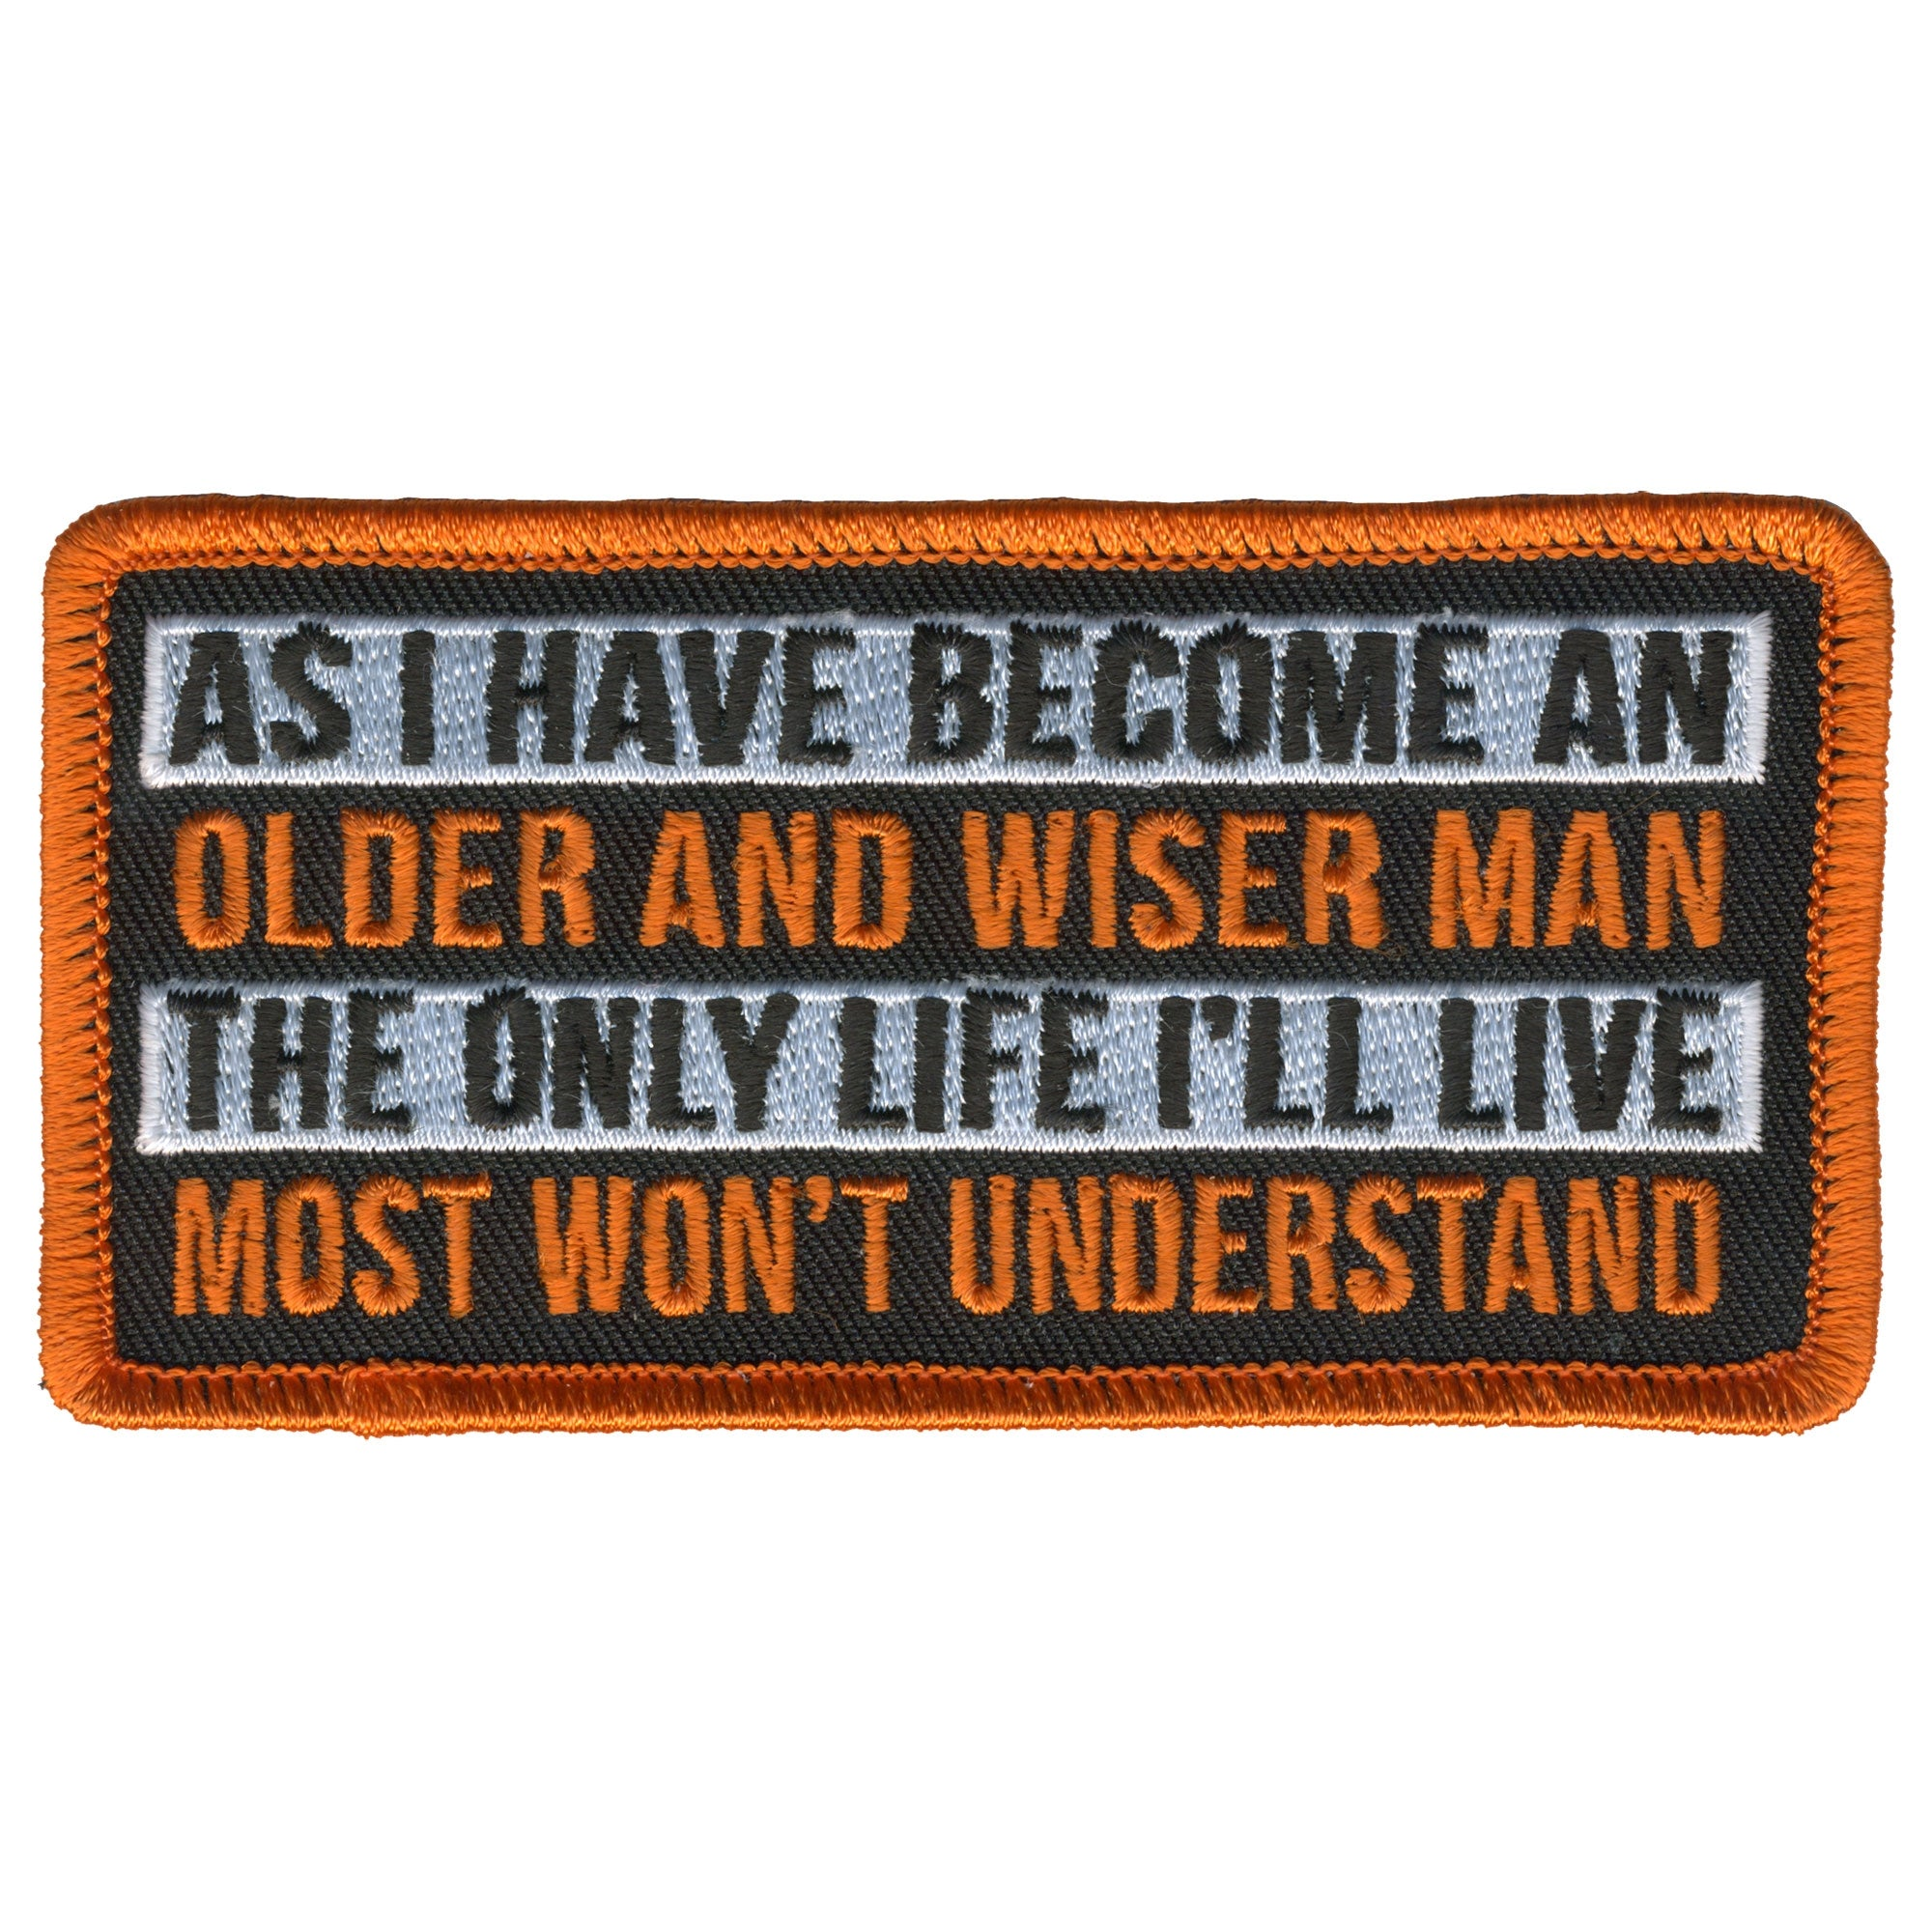 Hot Leathers Patch Wiser Man